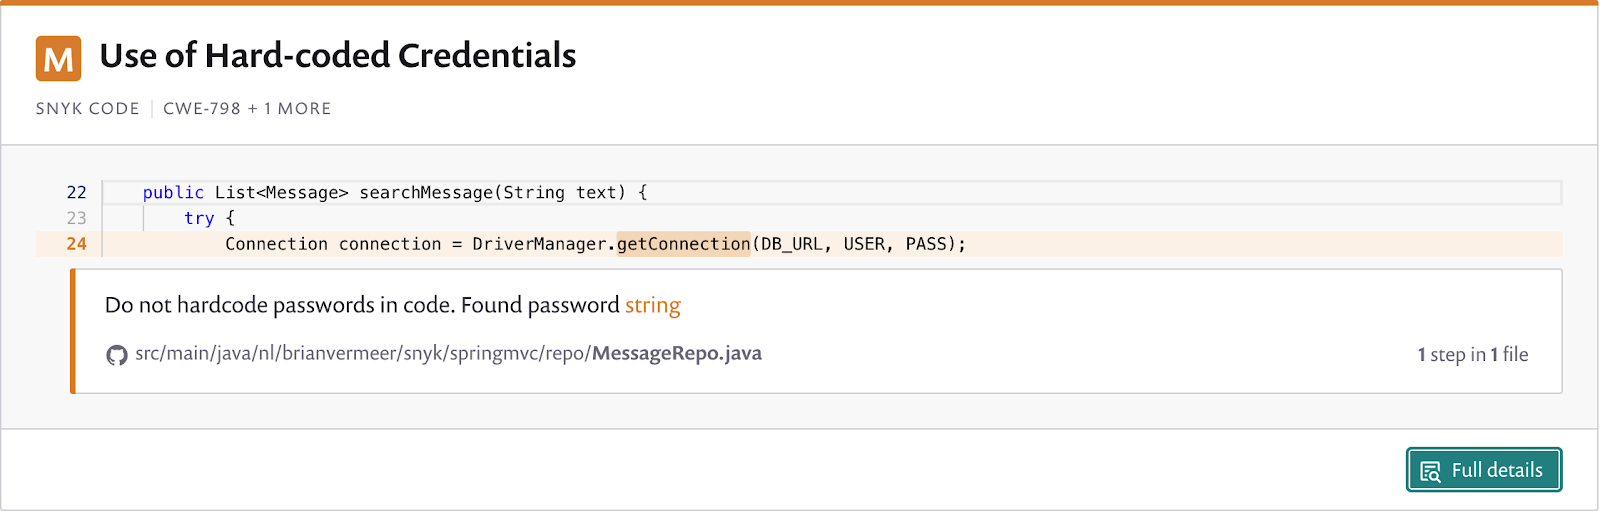 Don't hard code credentials. Advised by Snyk Code